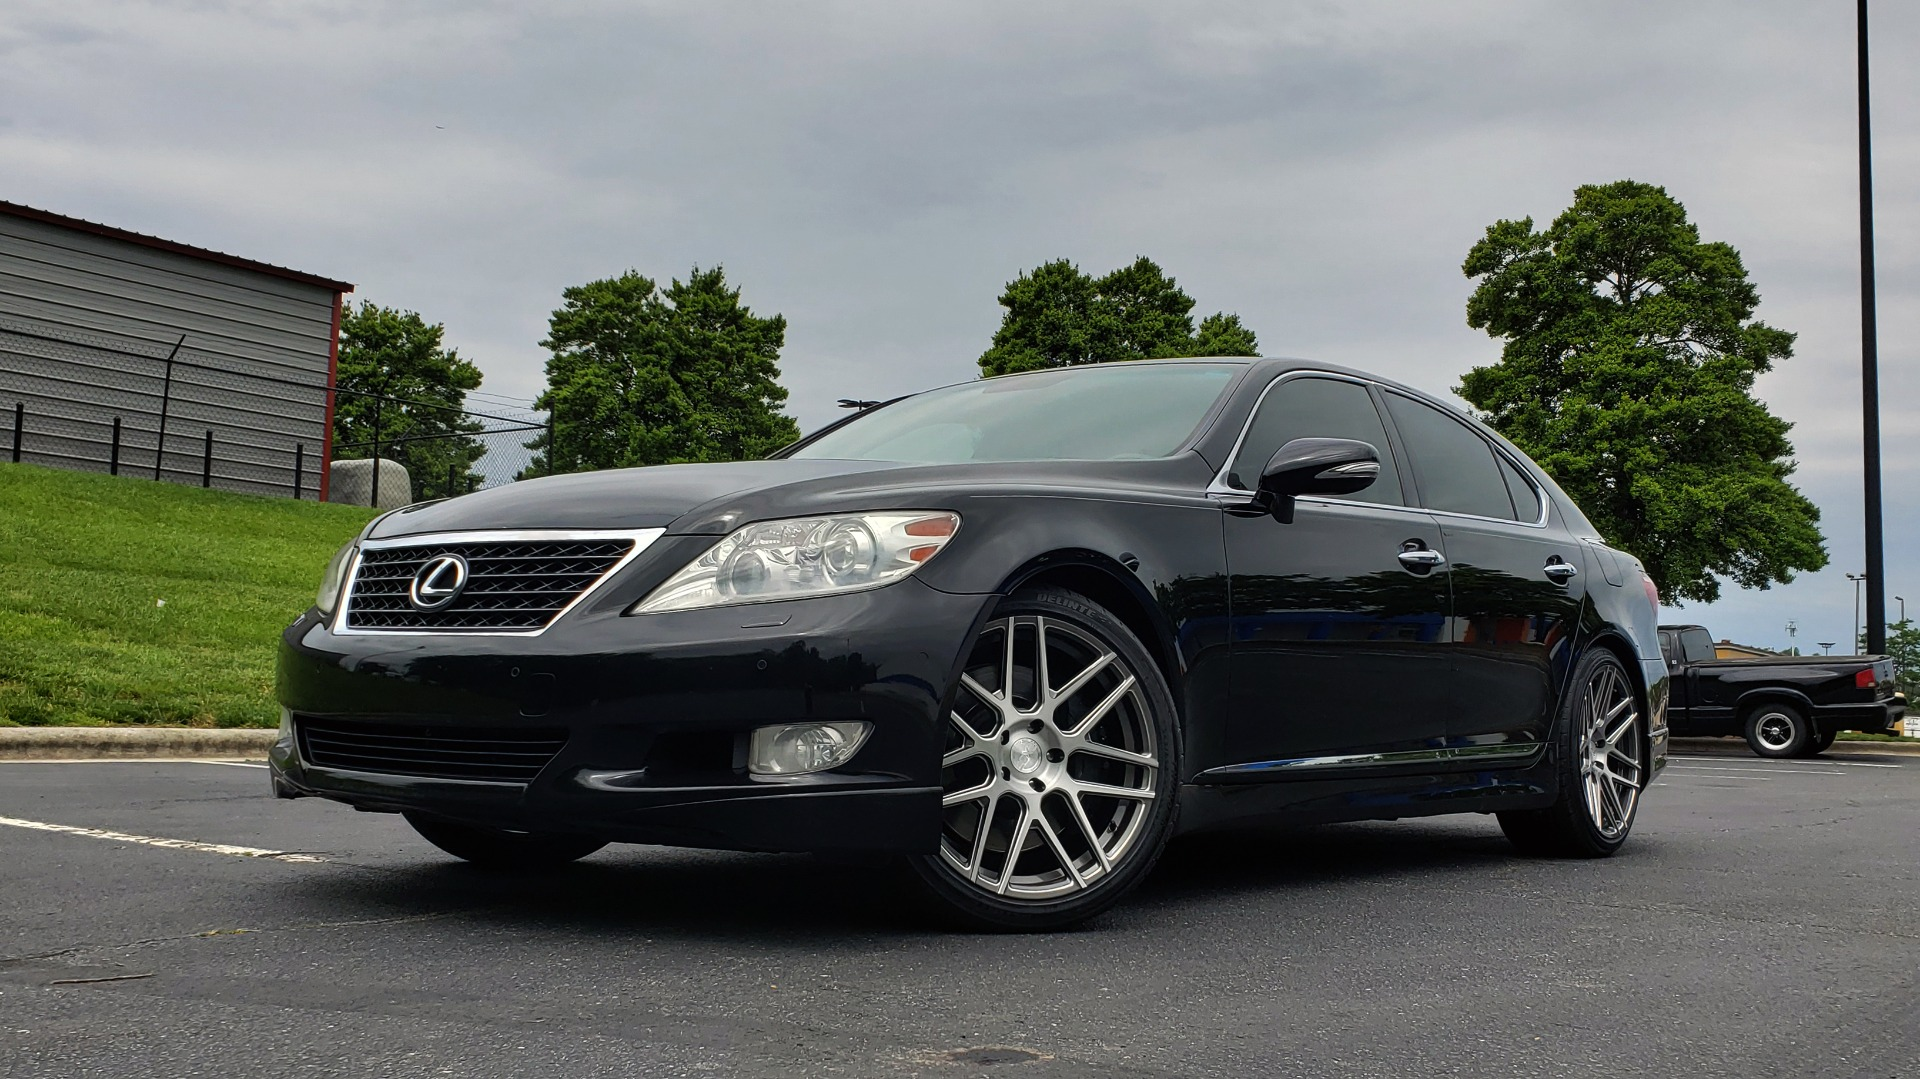 Used 2012 Lexus LS 460 COMFORT W/SPORT / VENT SEATS / NAV / MARK LEV SND / SUNROOF for sale Sold at Formula Imports in Charlotte NC 28227 2